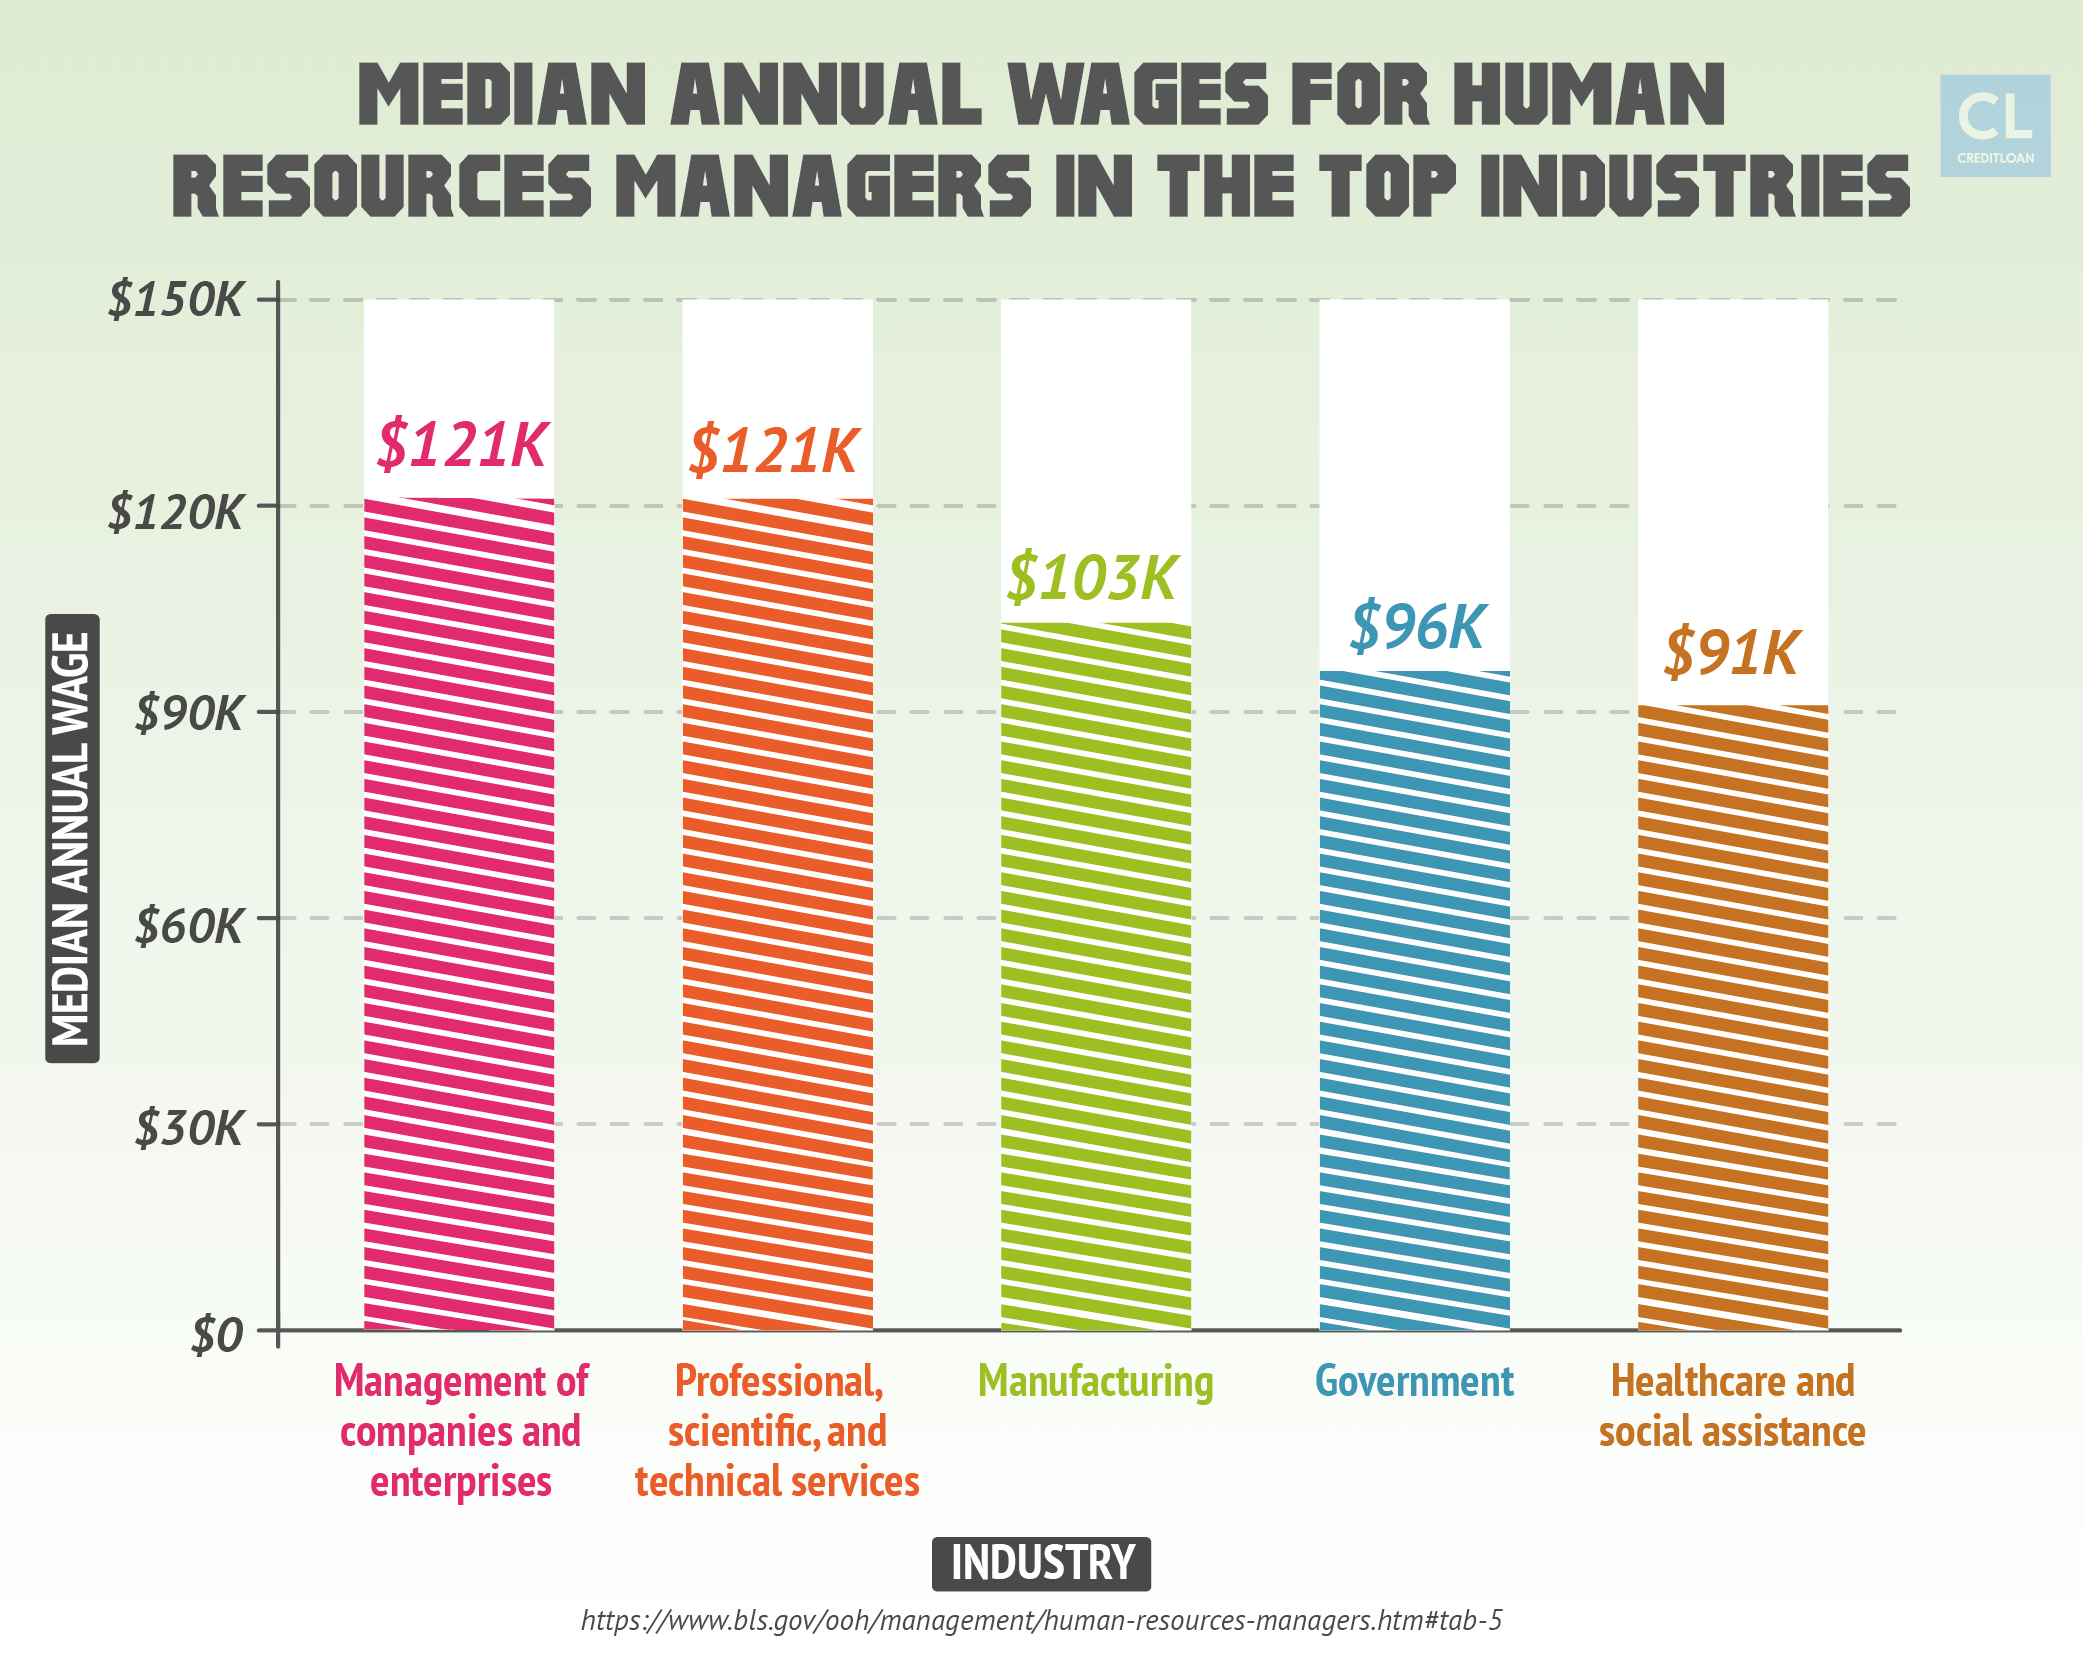 Median Annual Wages for Human Resources Managers in the Top Industries